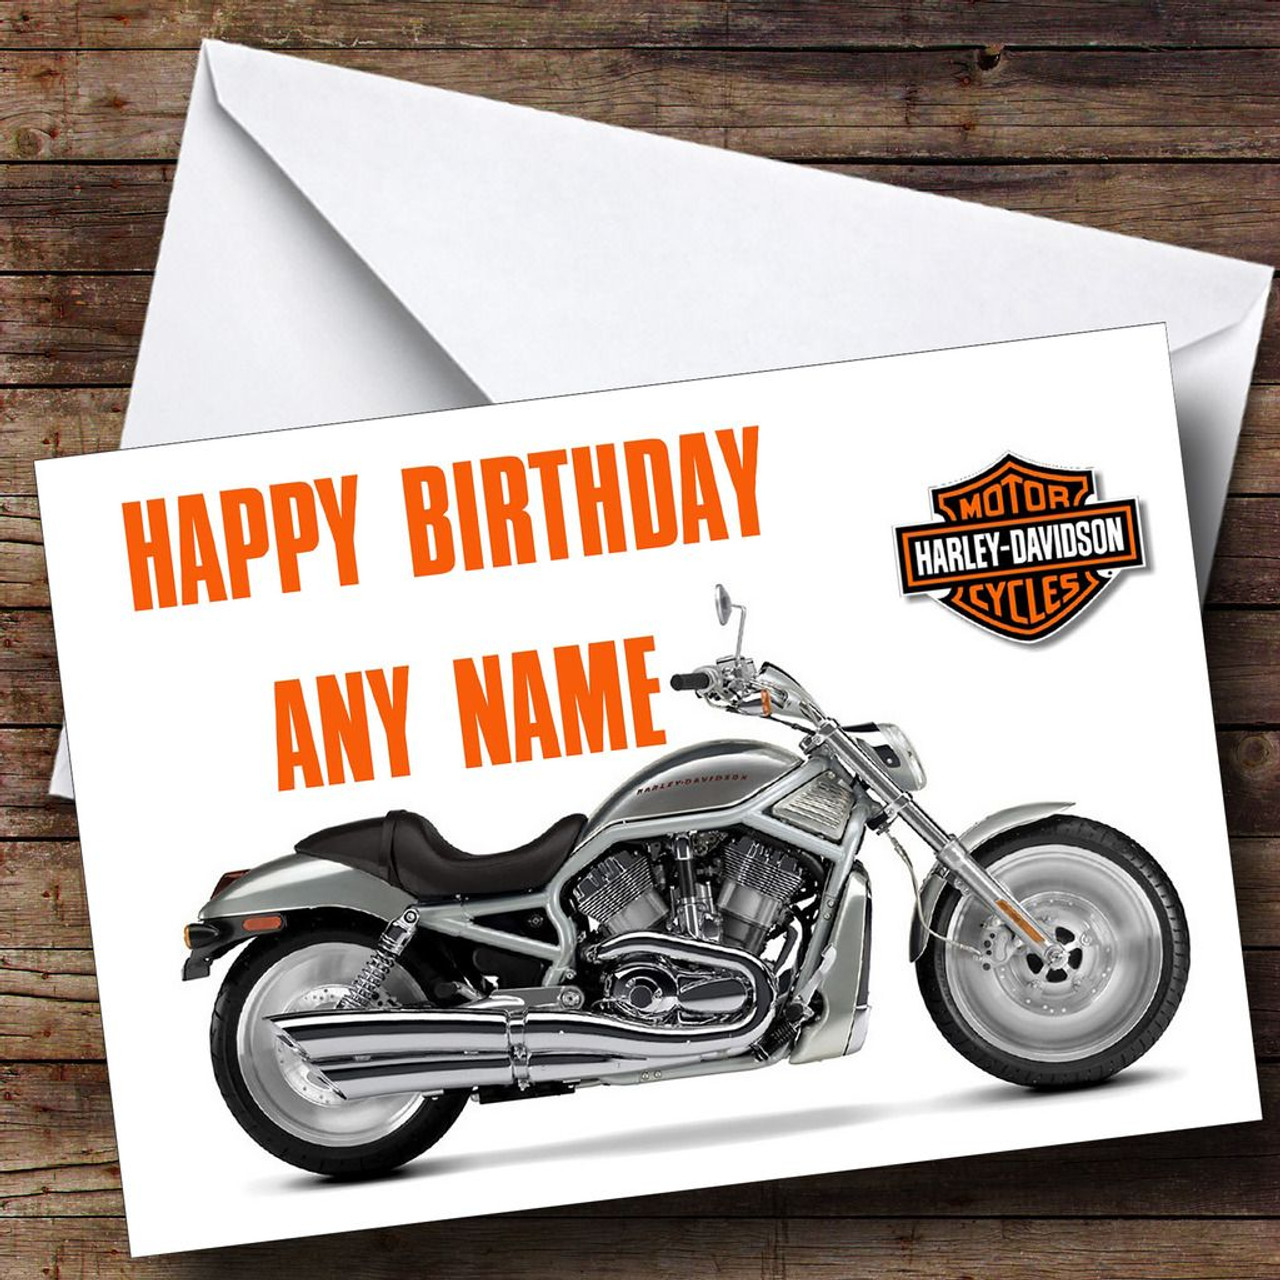 Harley davidson bike personalised birthday card the card zoo harley davidson bike personalised birthday card bookmarktalkfo Image collections